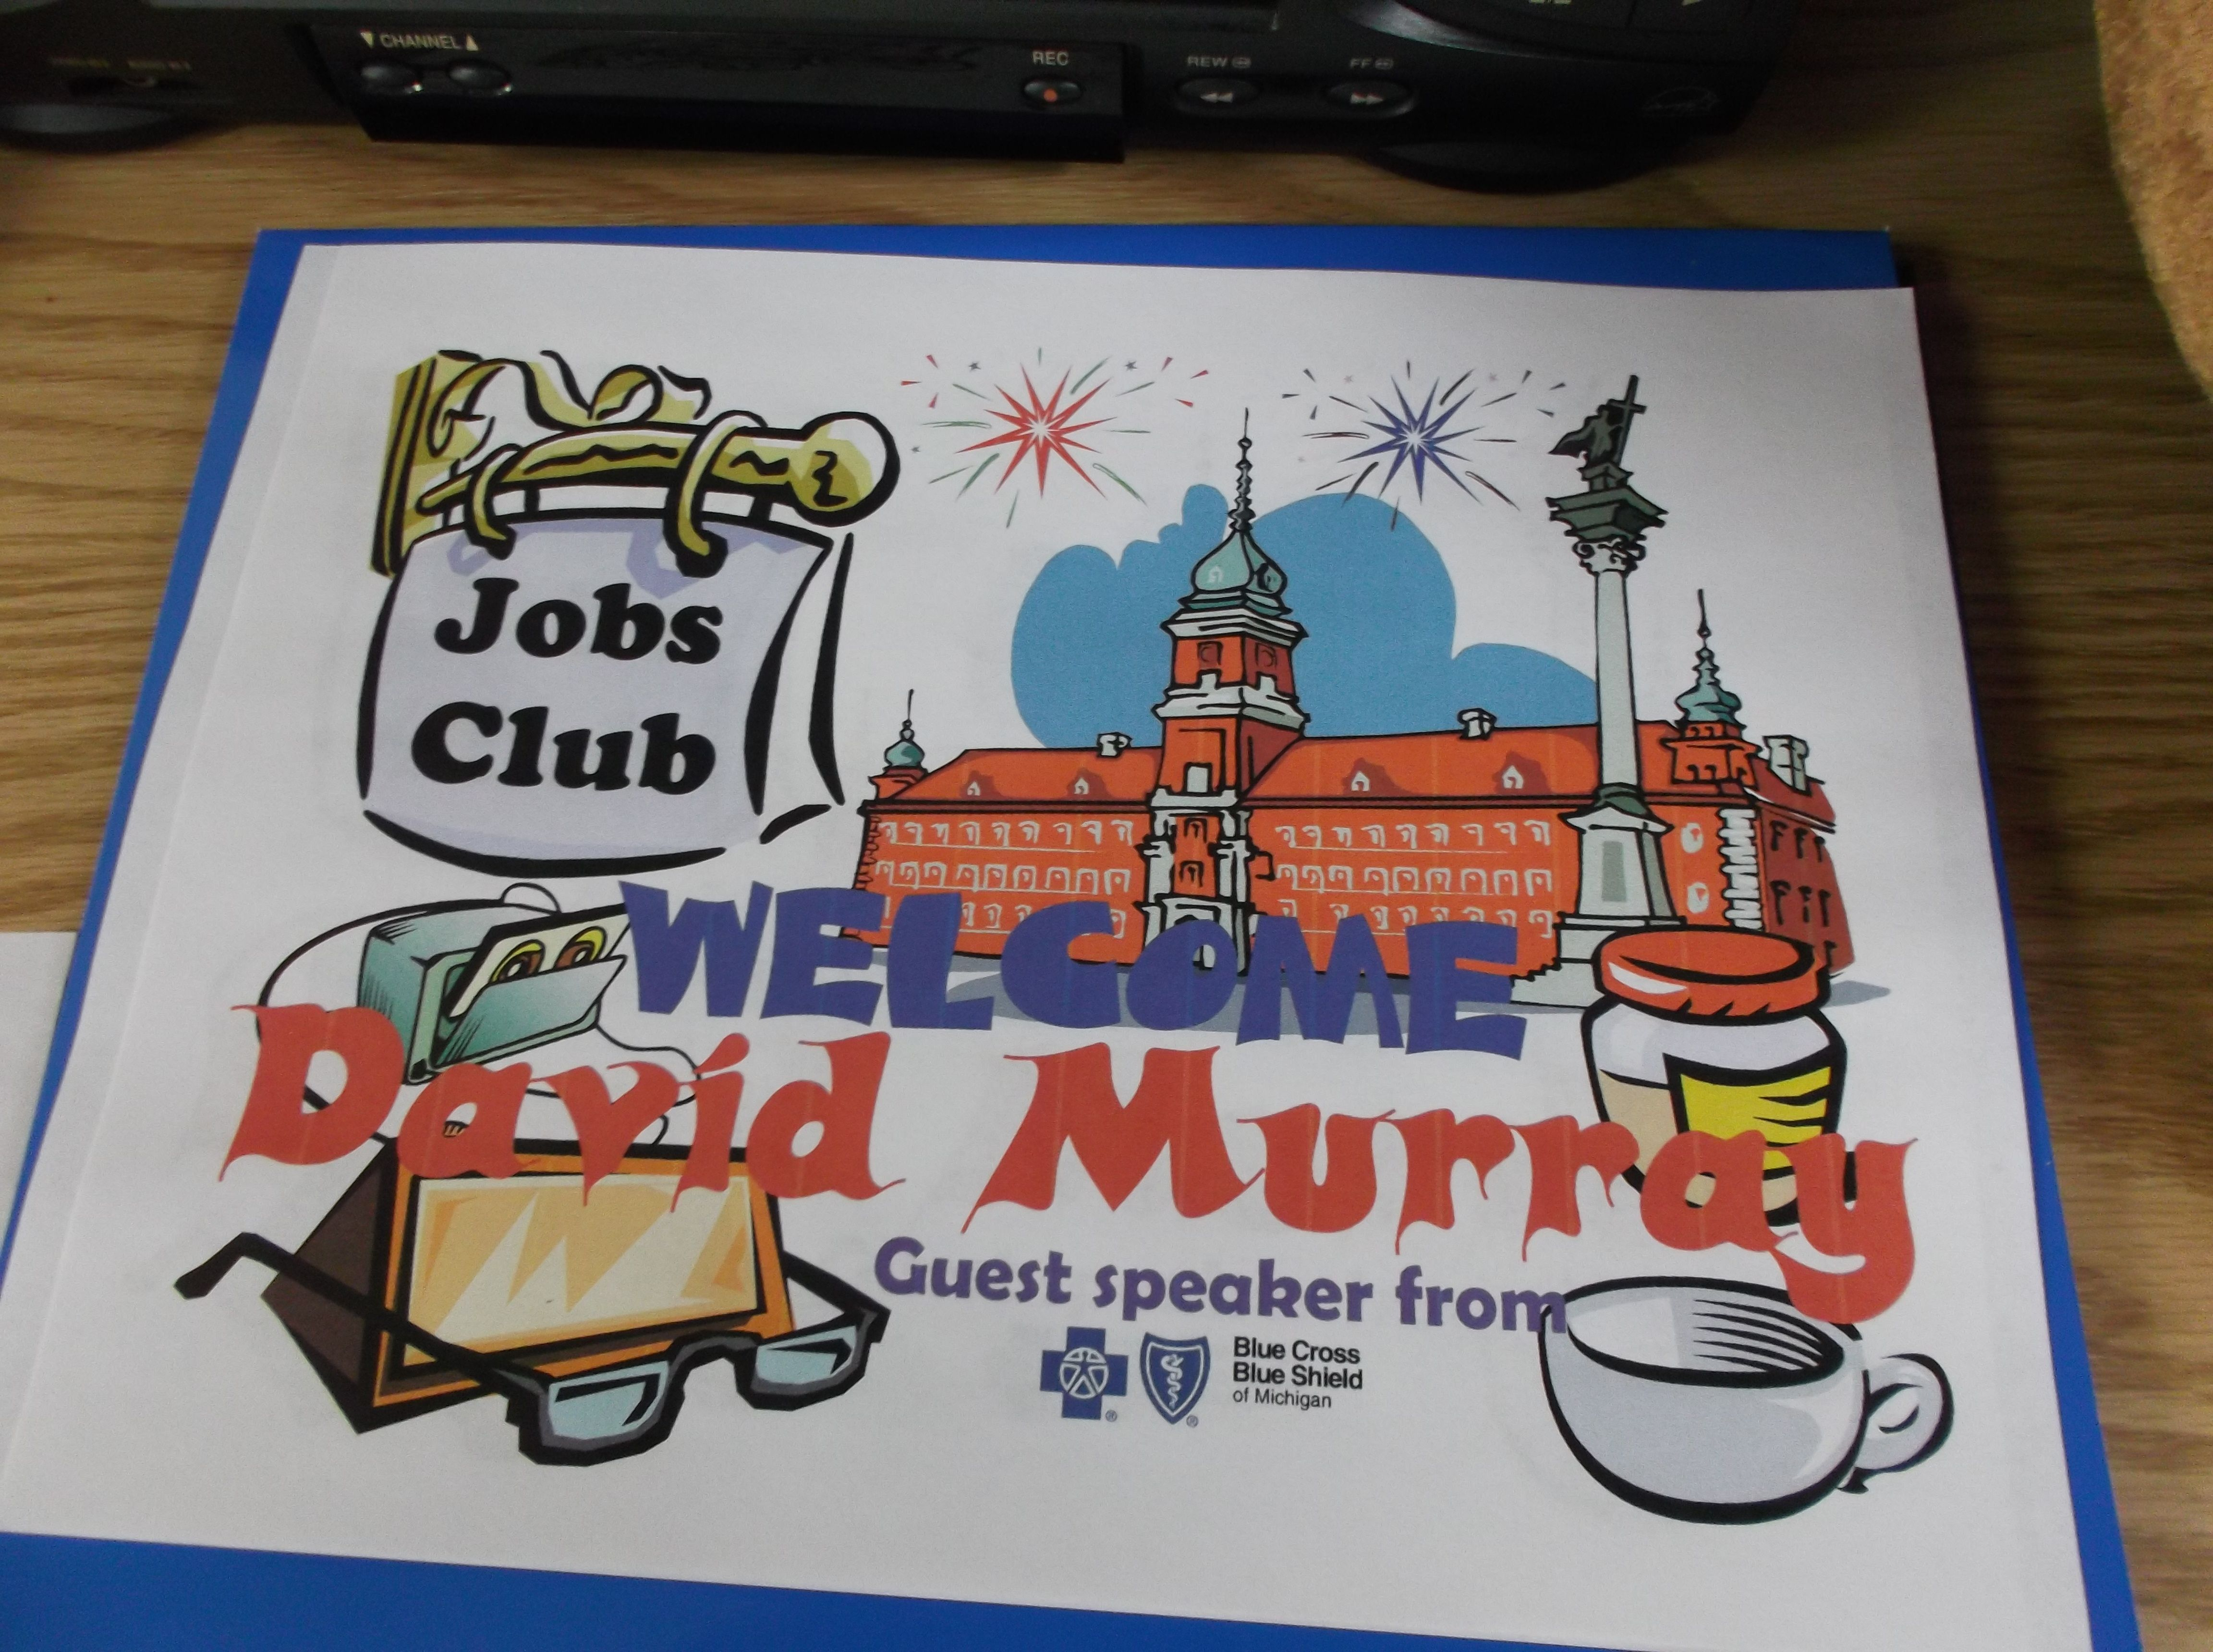 A welcome flyer for David Murray when he spoke at the Jobs Club.